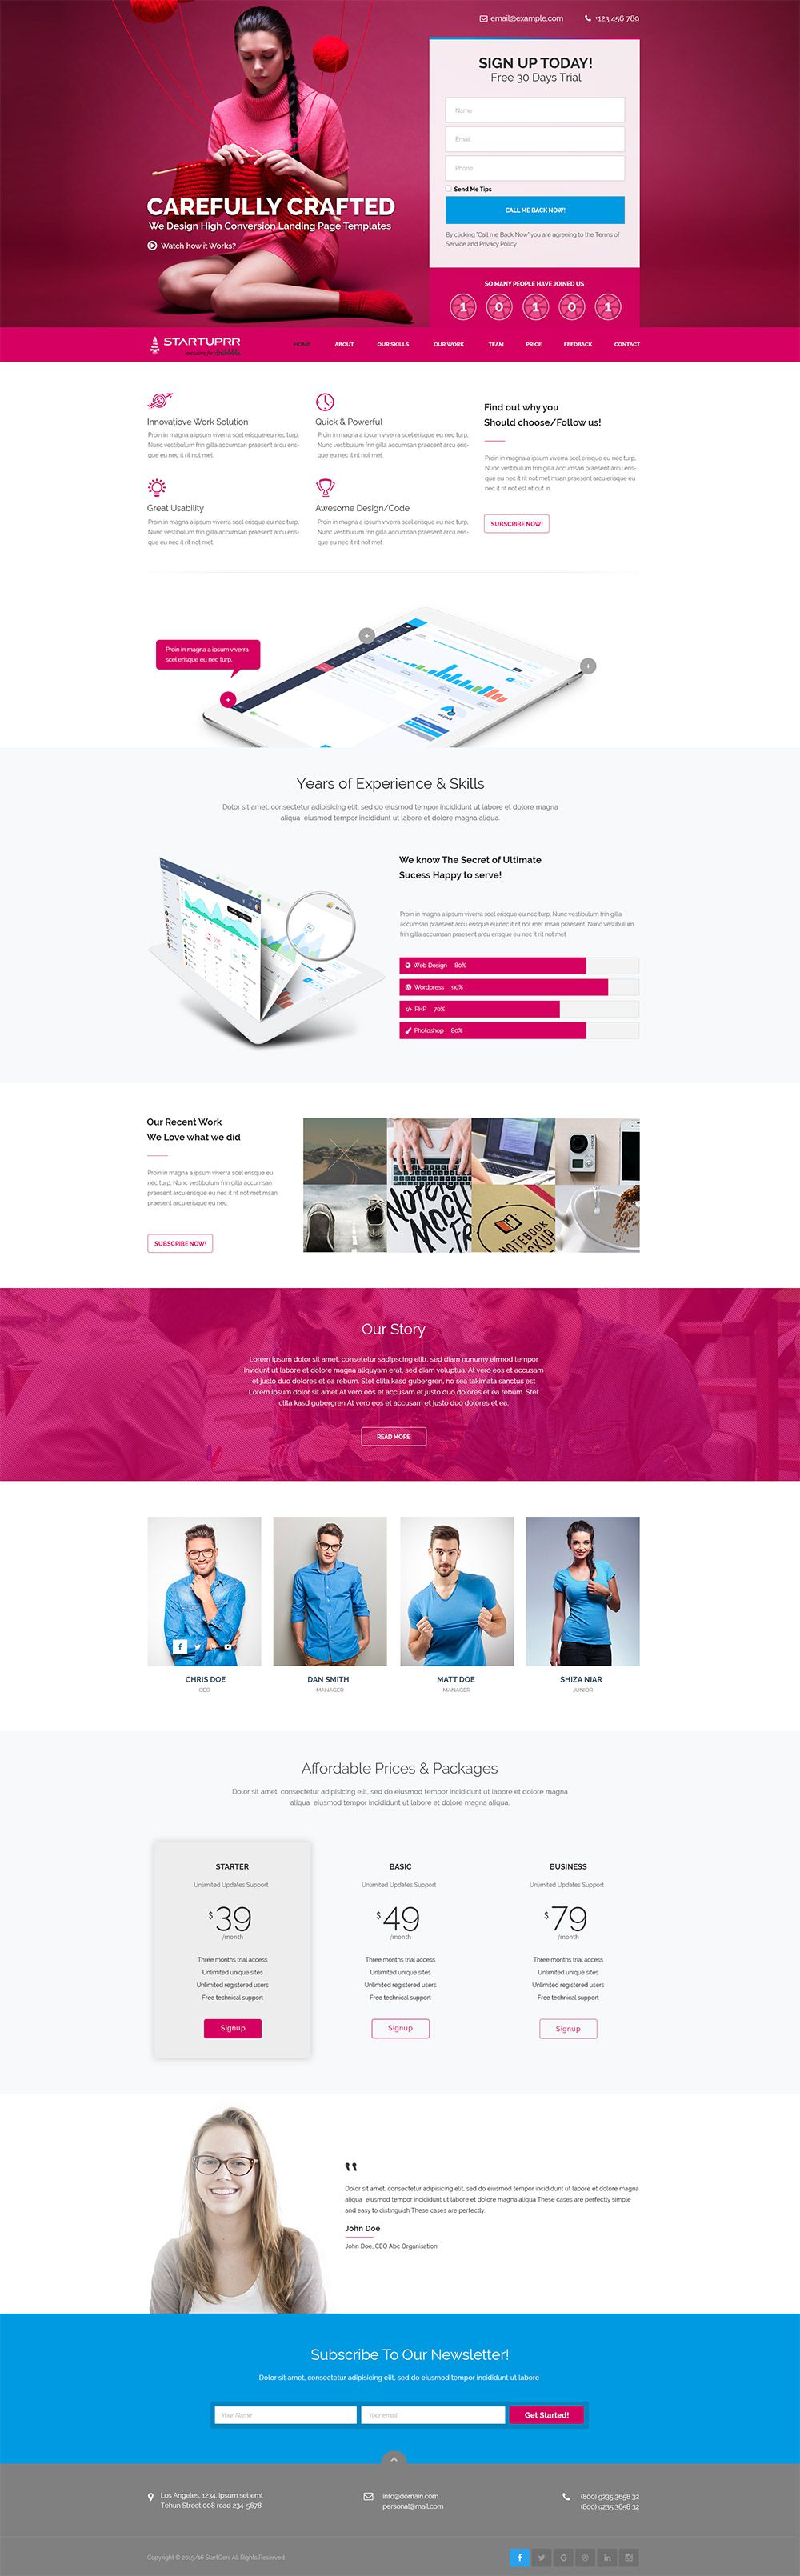 p>Download Product and Services Website Landing page Template Free ...